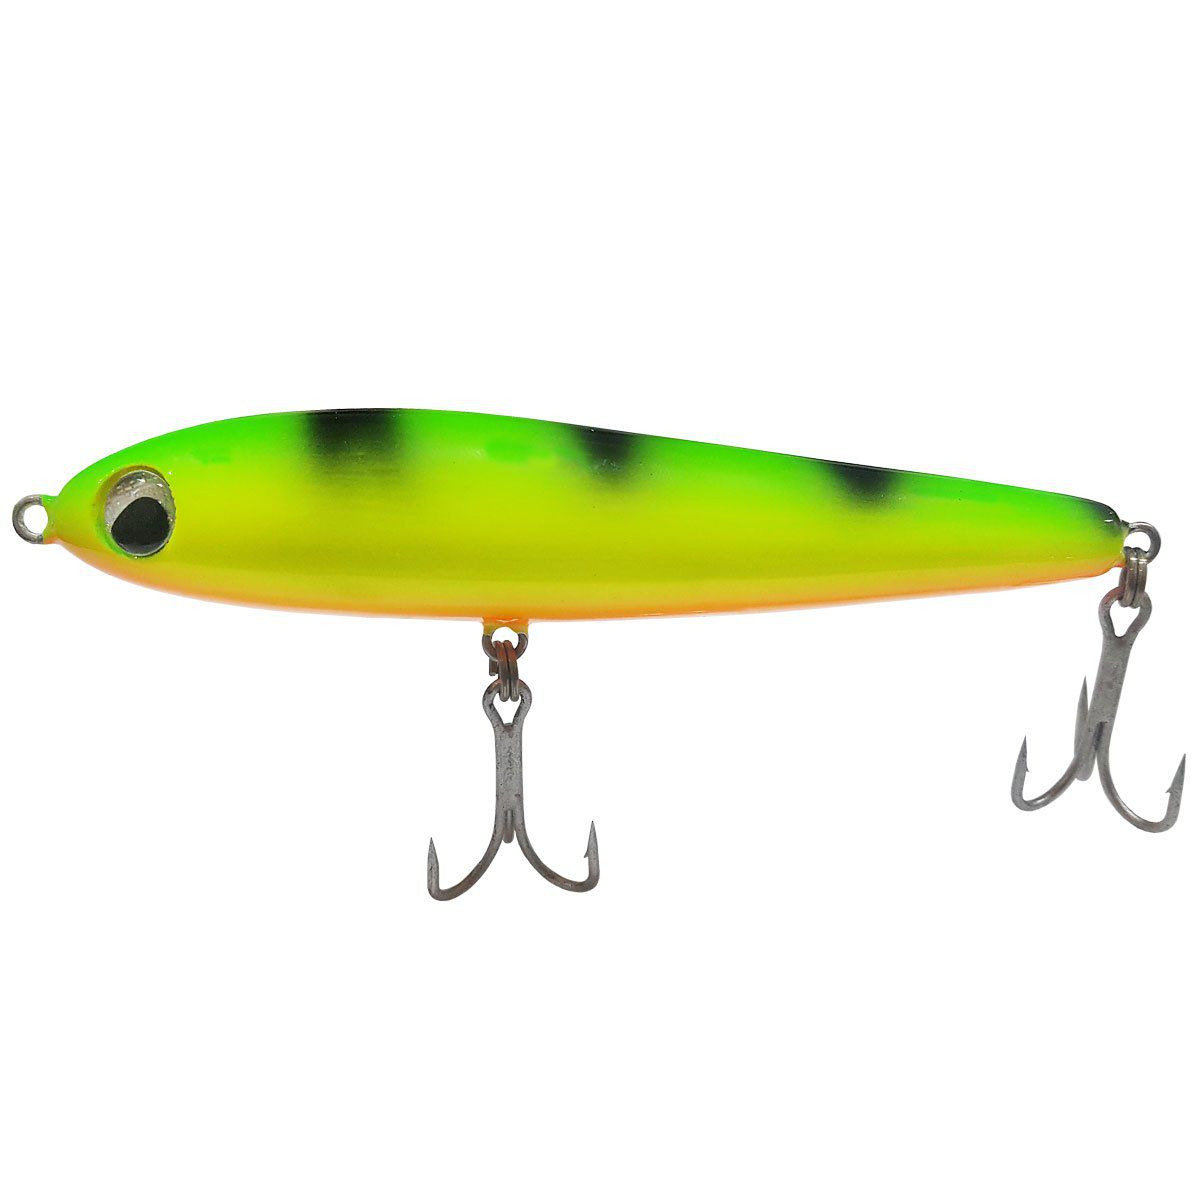 Isca Artificial Ocl Controw Minnow 12cm 18g